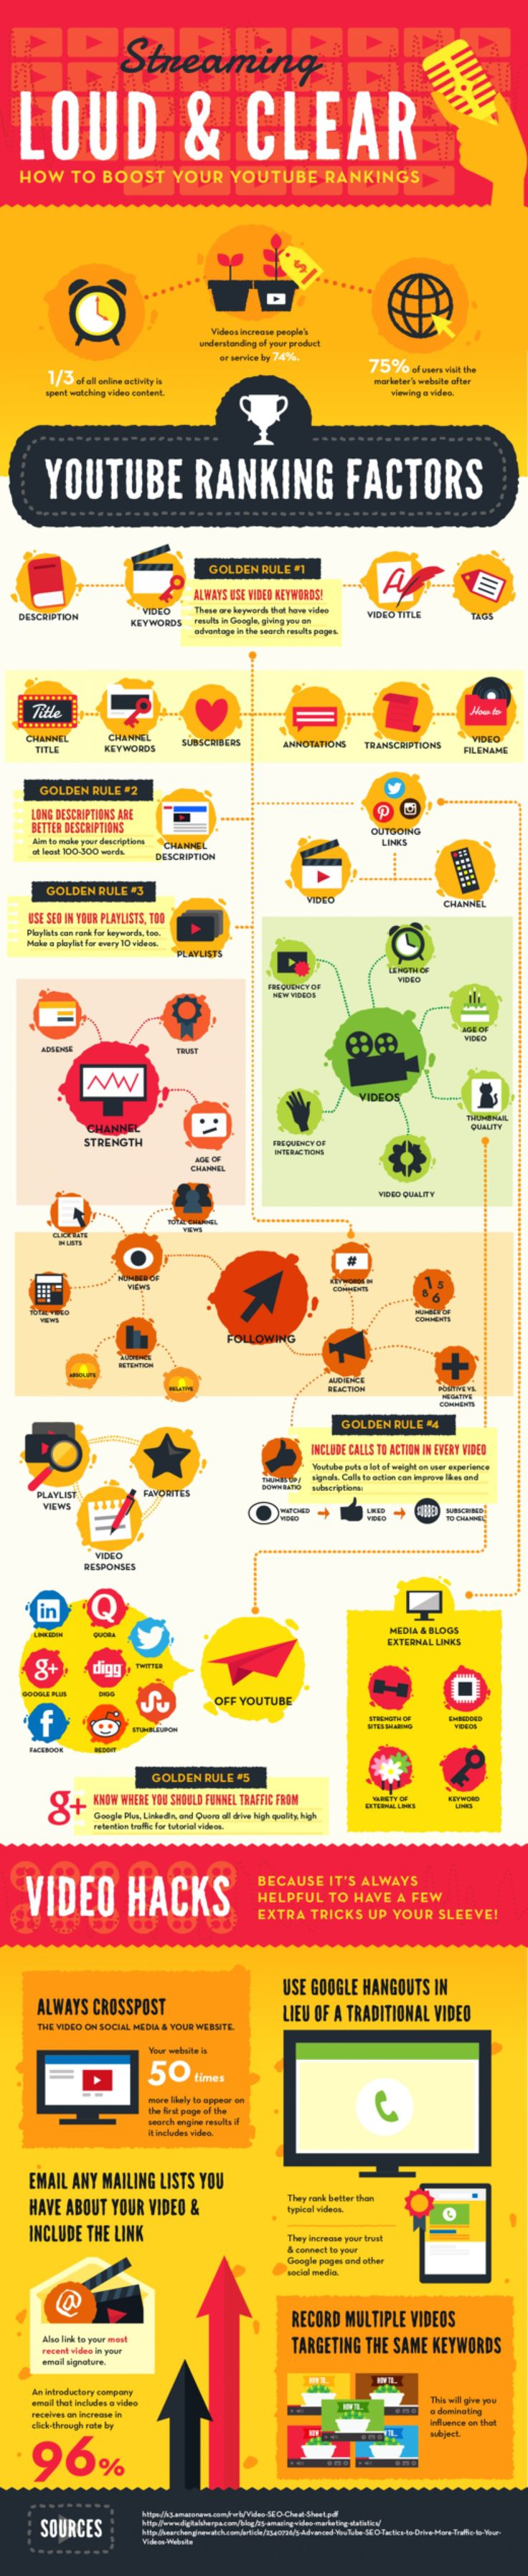 How To Boost Your #Youtube Rankings | #infographic #Infografia… http://www.buzzblend.com